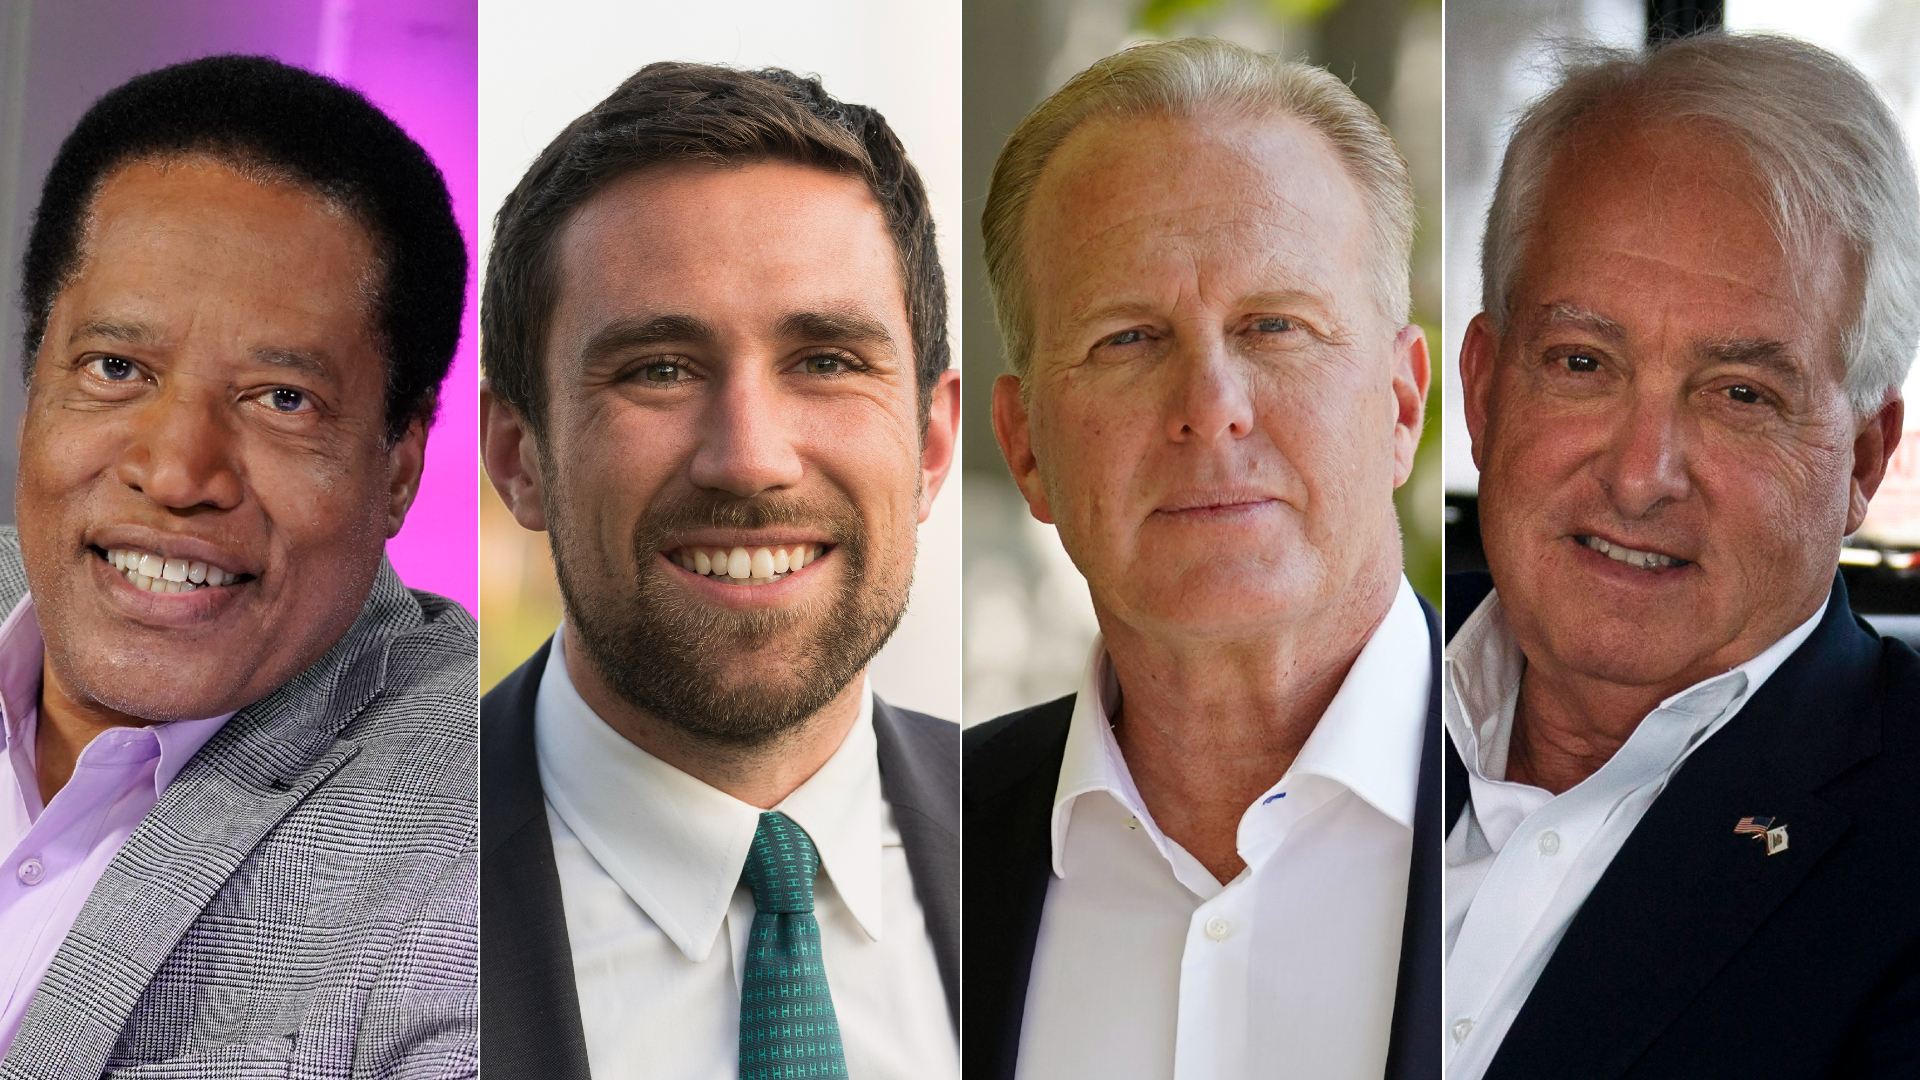 California recall: These 4 candidates are leading polls in race to replace  Gov. Gavin Newsom | KTLA